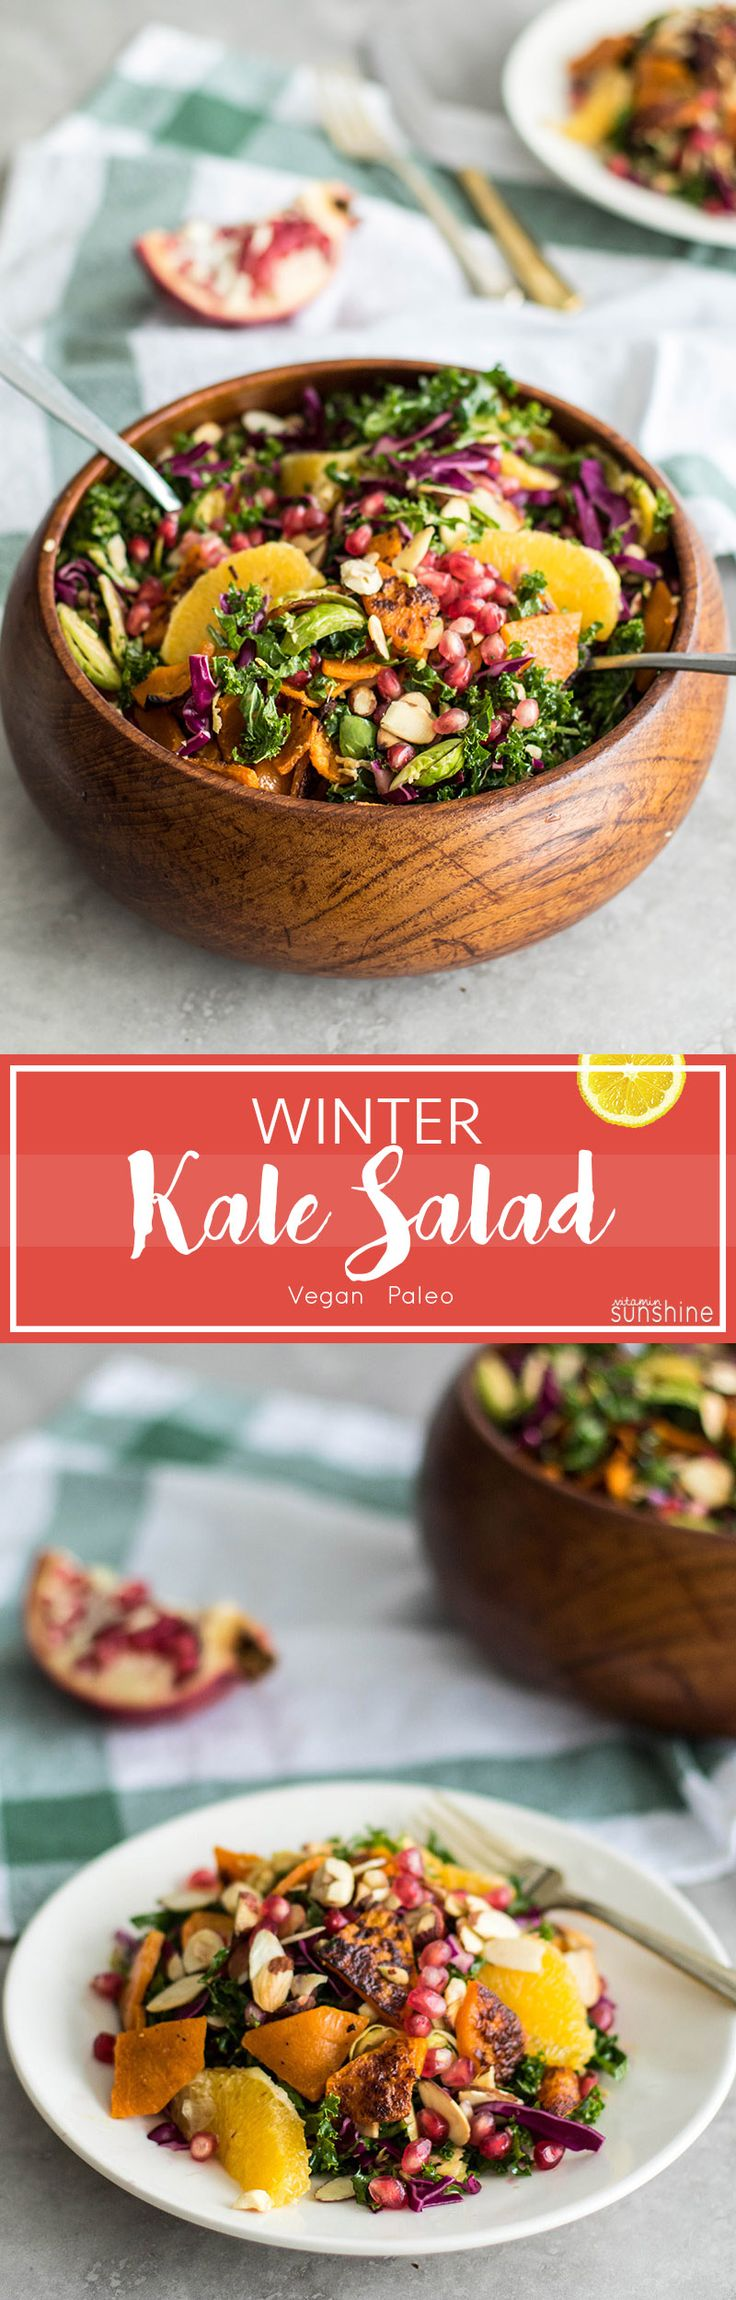 Winter Kale Brussels Sprout Salad / This vibrant winter salad is loaded with pomegranate, oranges, roasted butternut, and crunchy nuts.